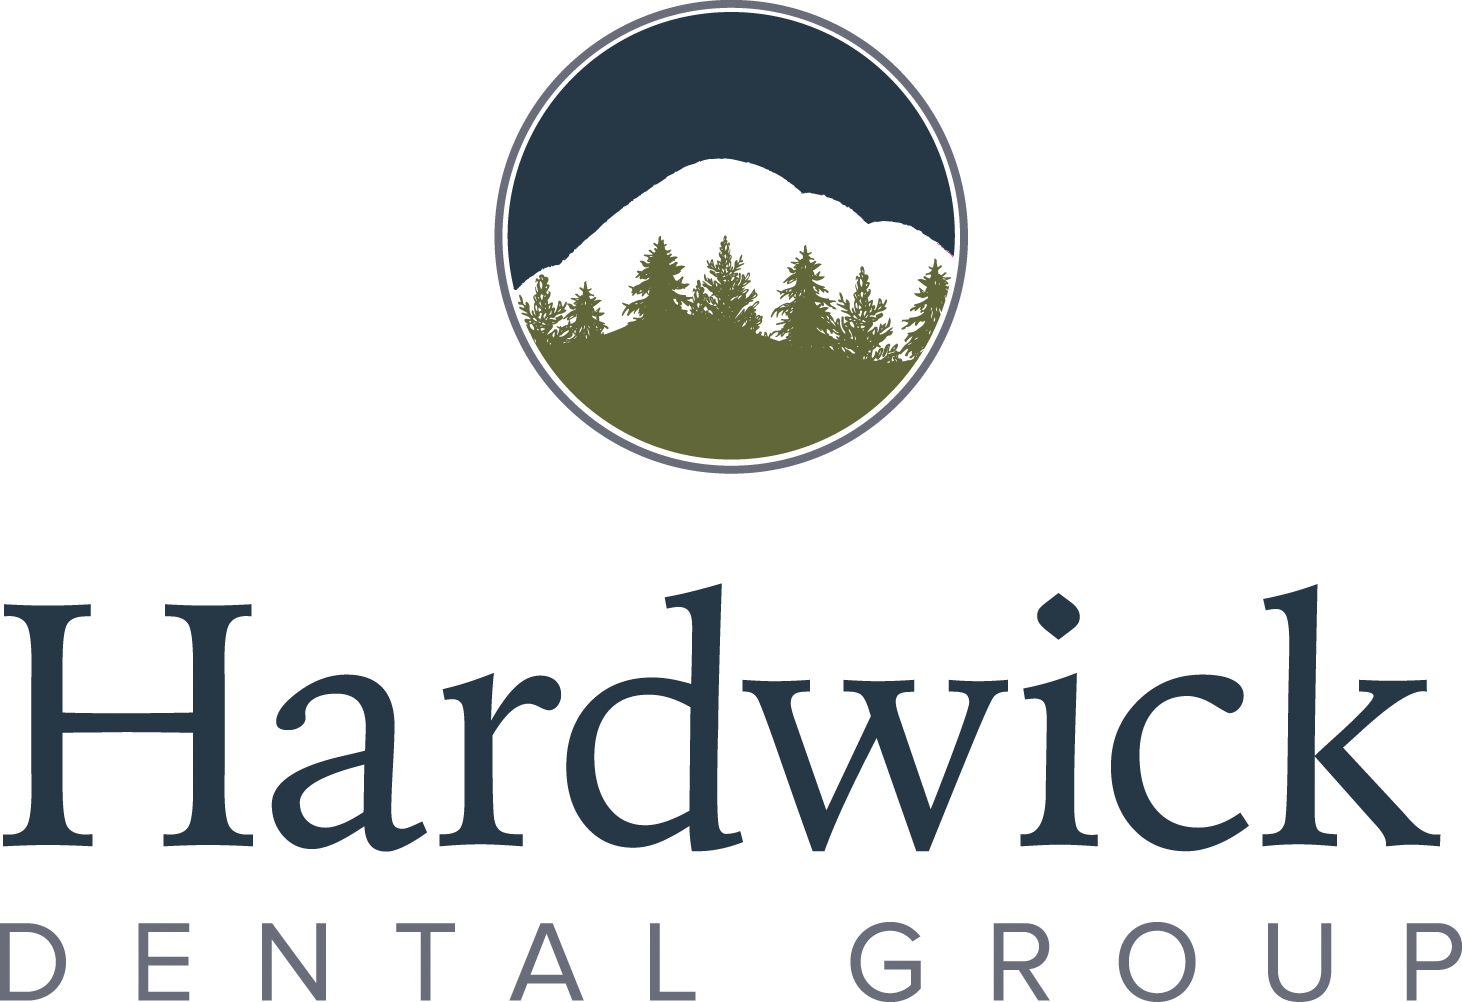 Hardwick Dental Group